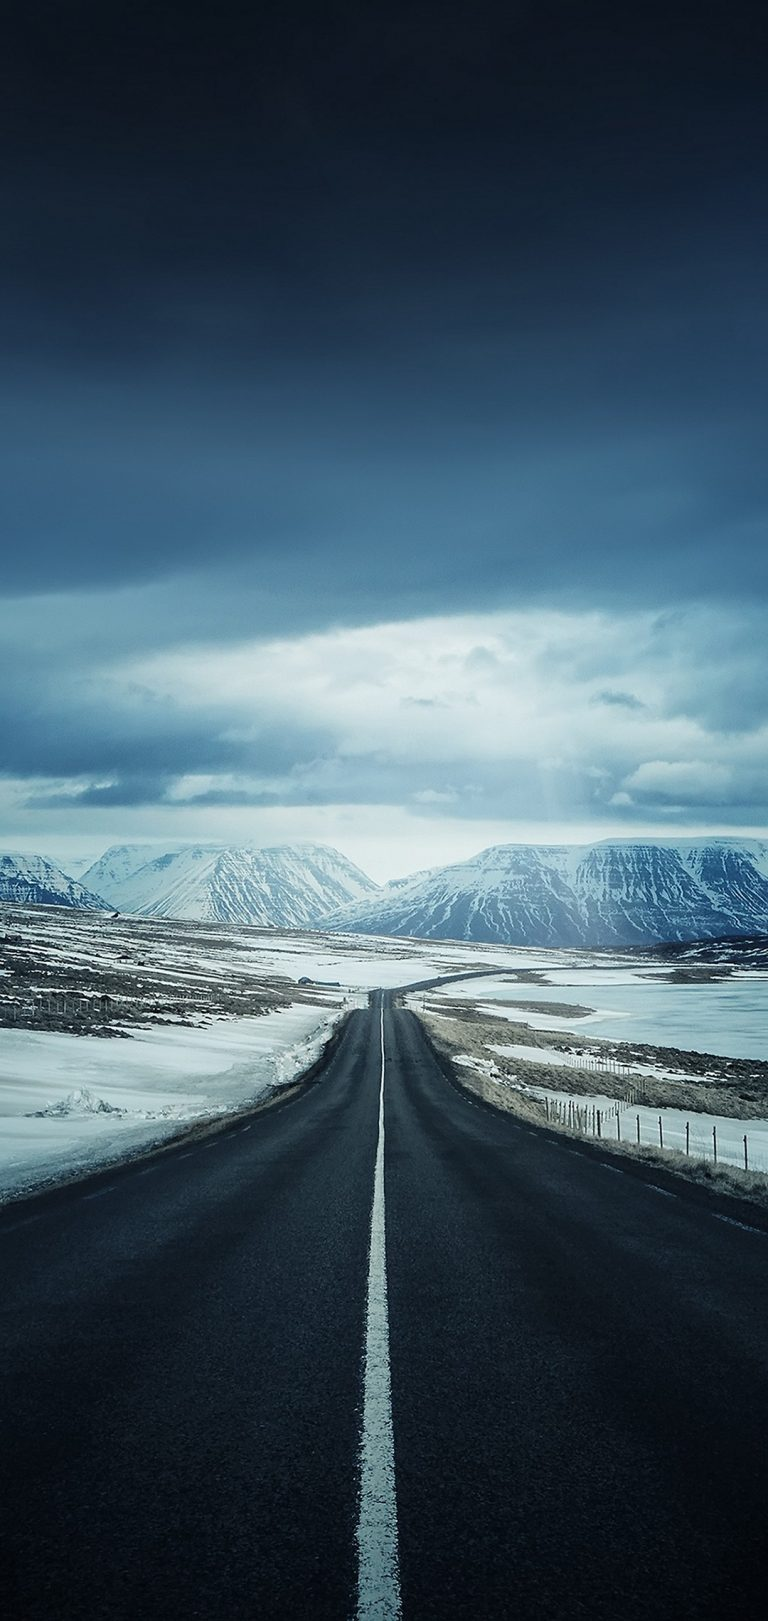 Winter Road Wallpaper 1080x2280 768x1621